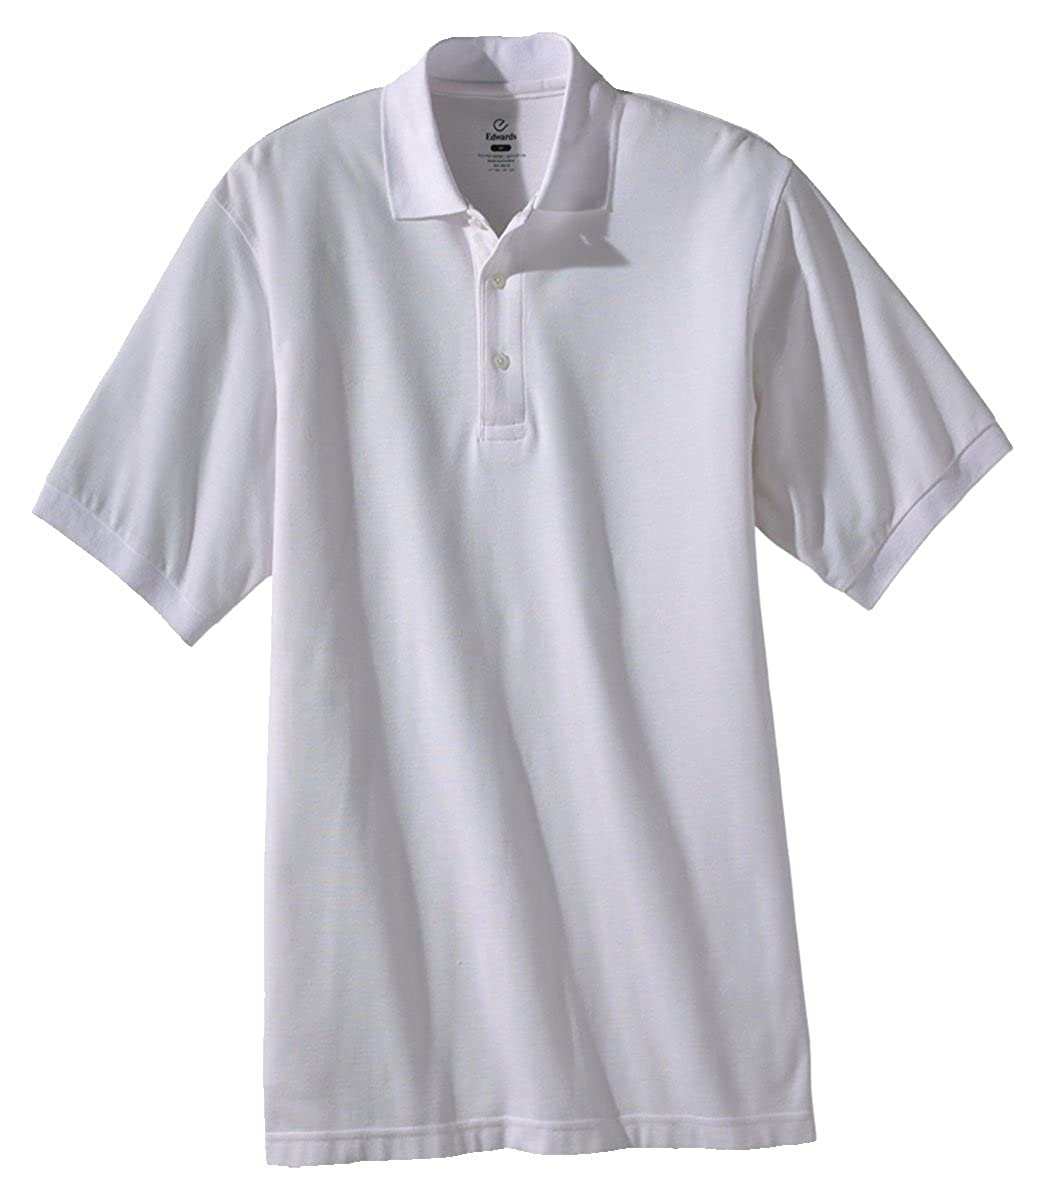 WHITE Ed Garments Mens Soft Touch Blended Pique Polo Shirt Large